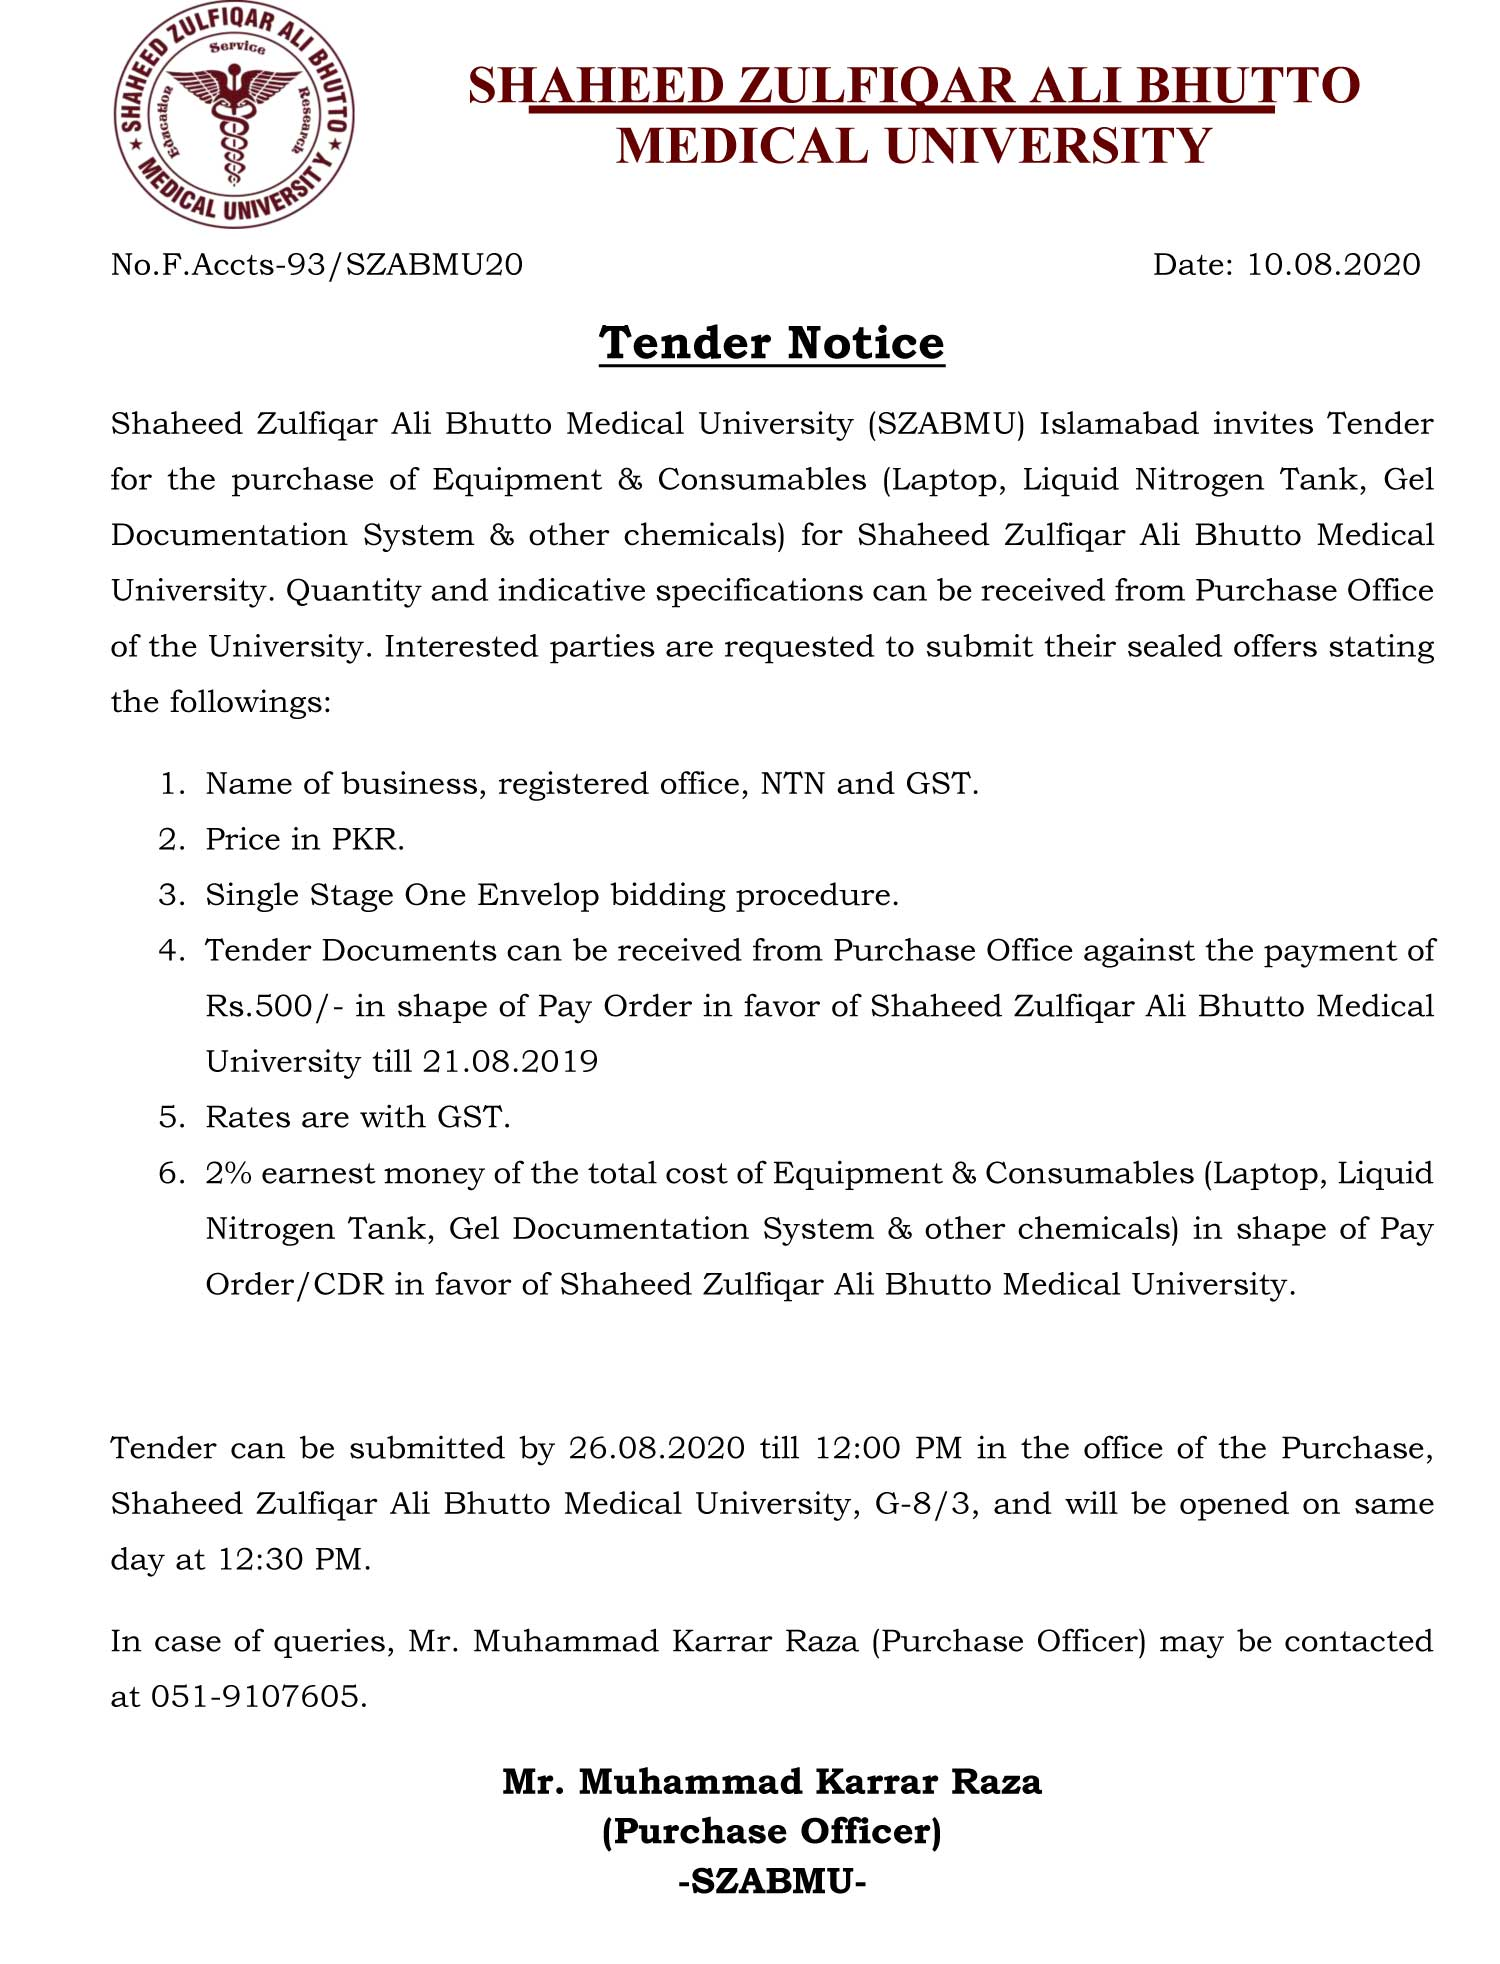 Tender Notice for the purchase of Equipment & Consumables